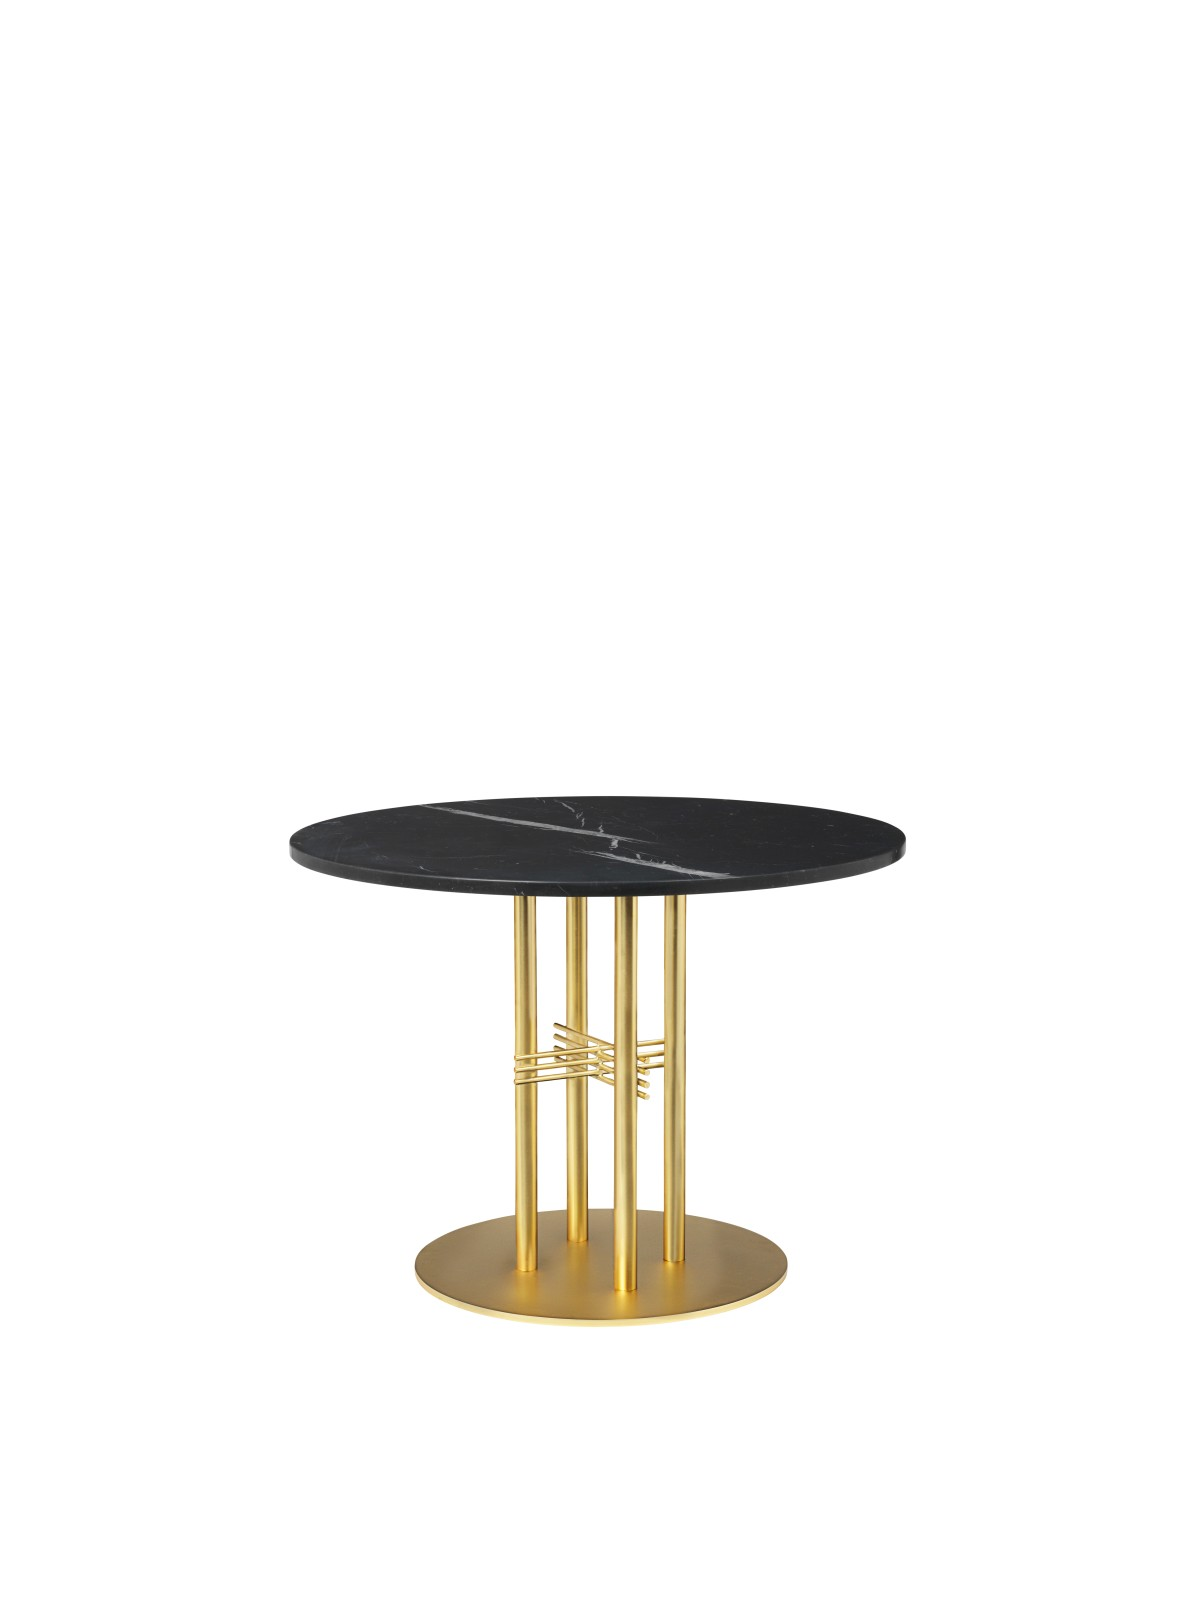 TS Column Lounge Table Marble 080, Frame Brass, Gubi Marble Nero Marquina